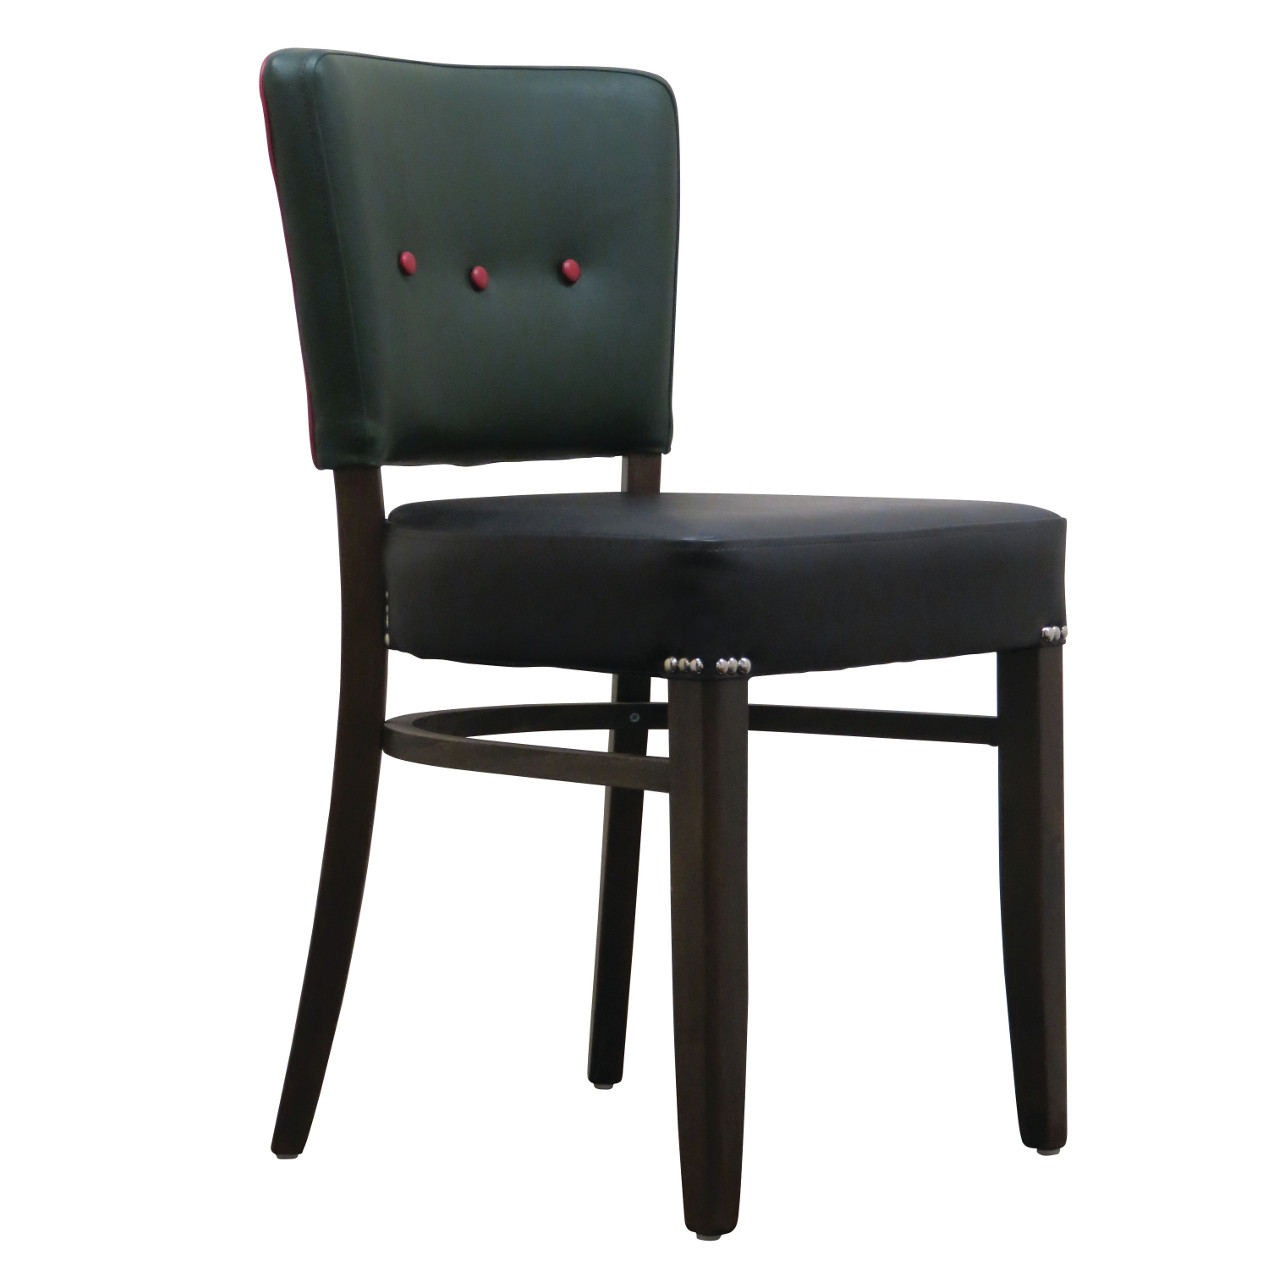 A23 side chair